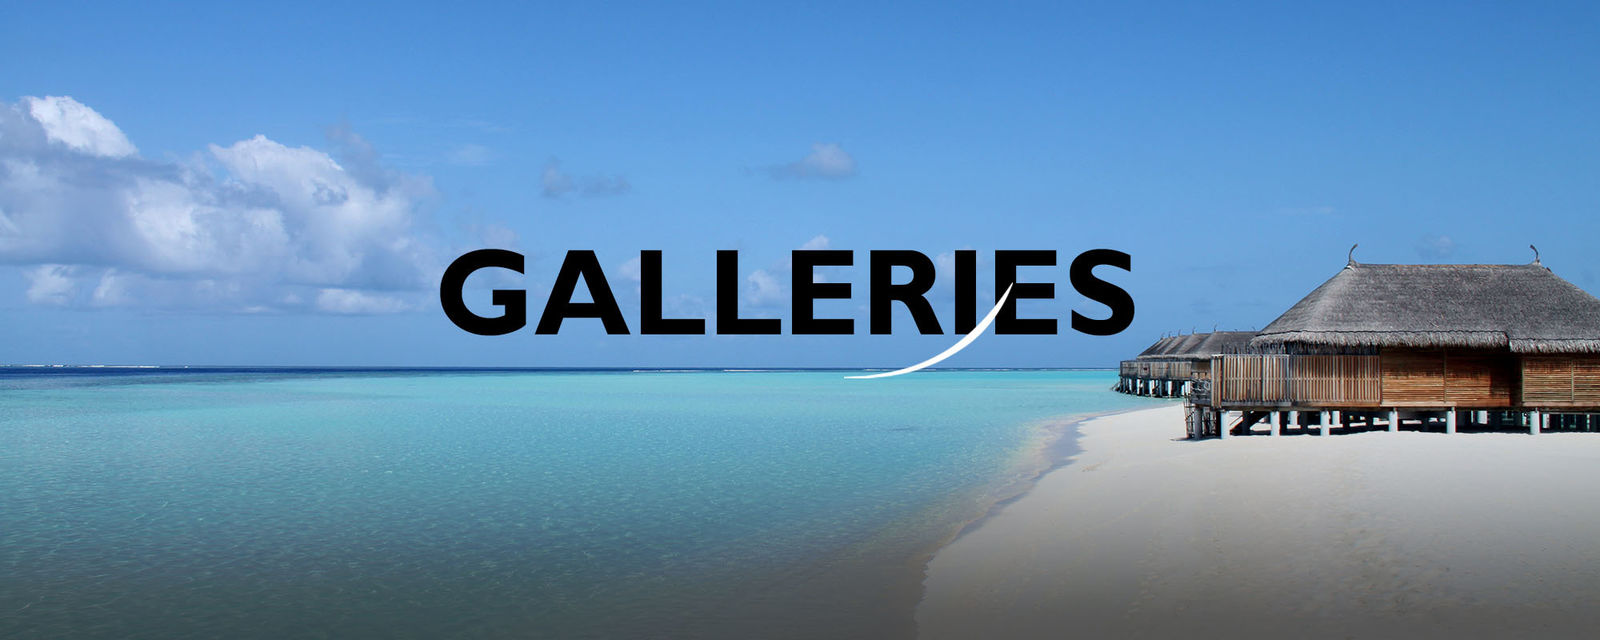 Galleries new